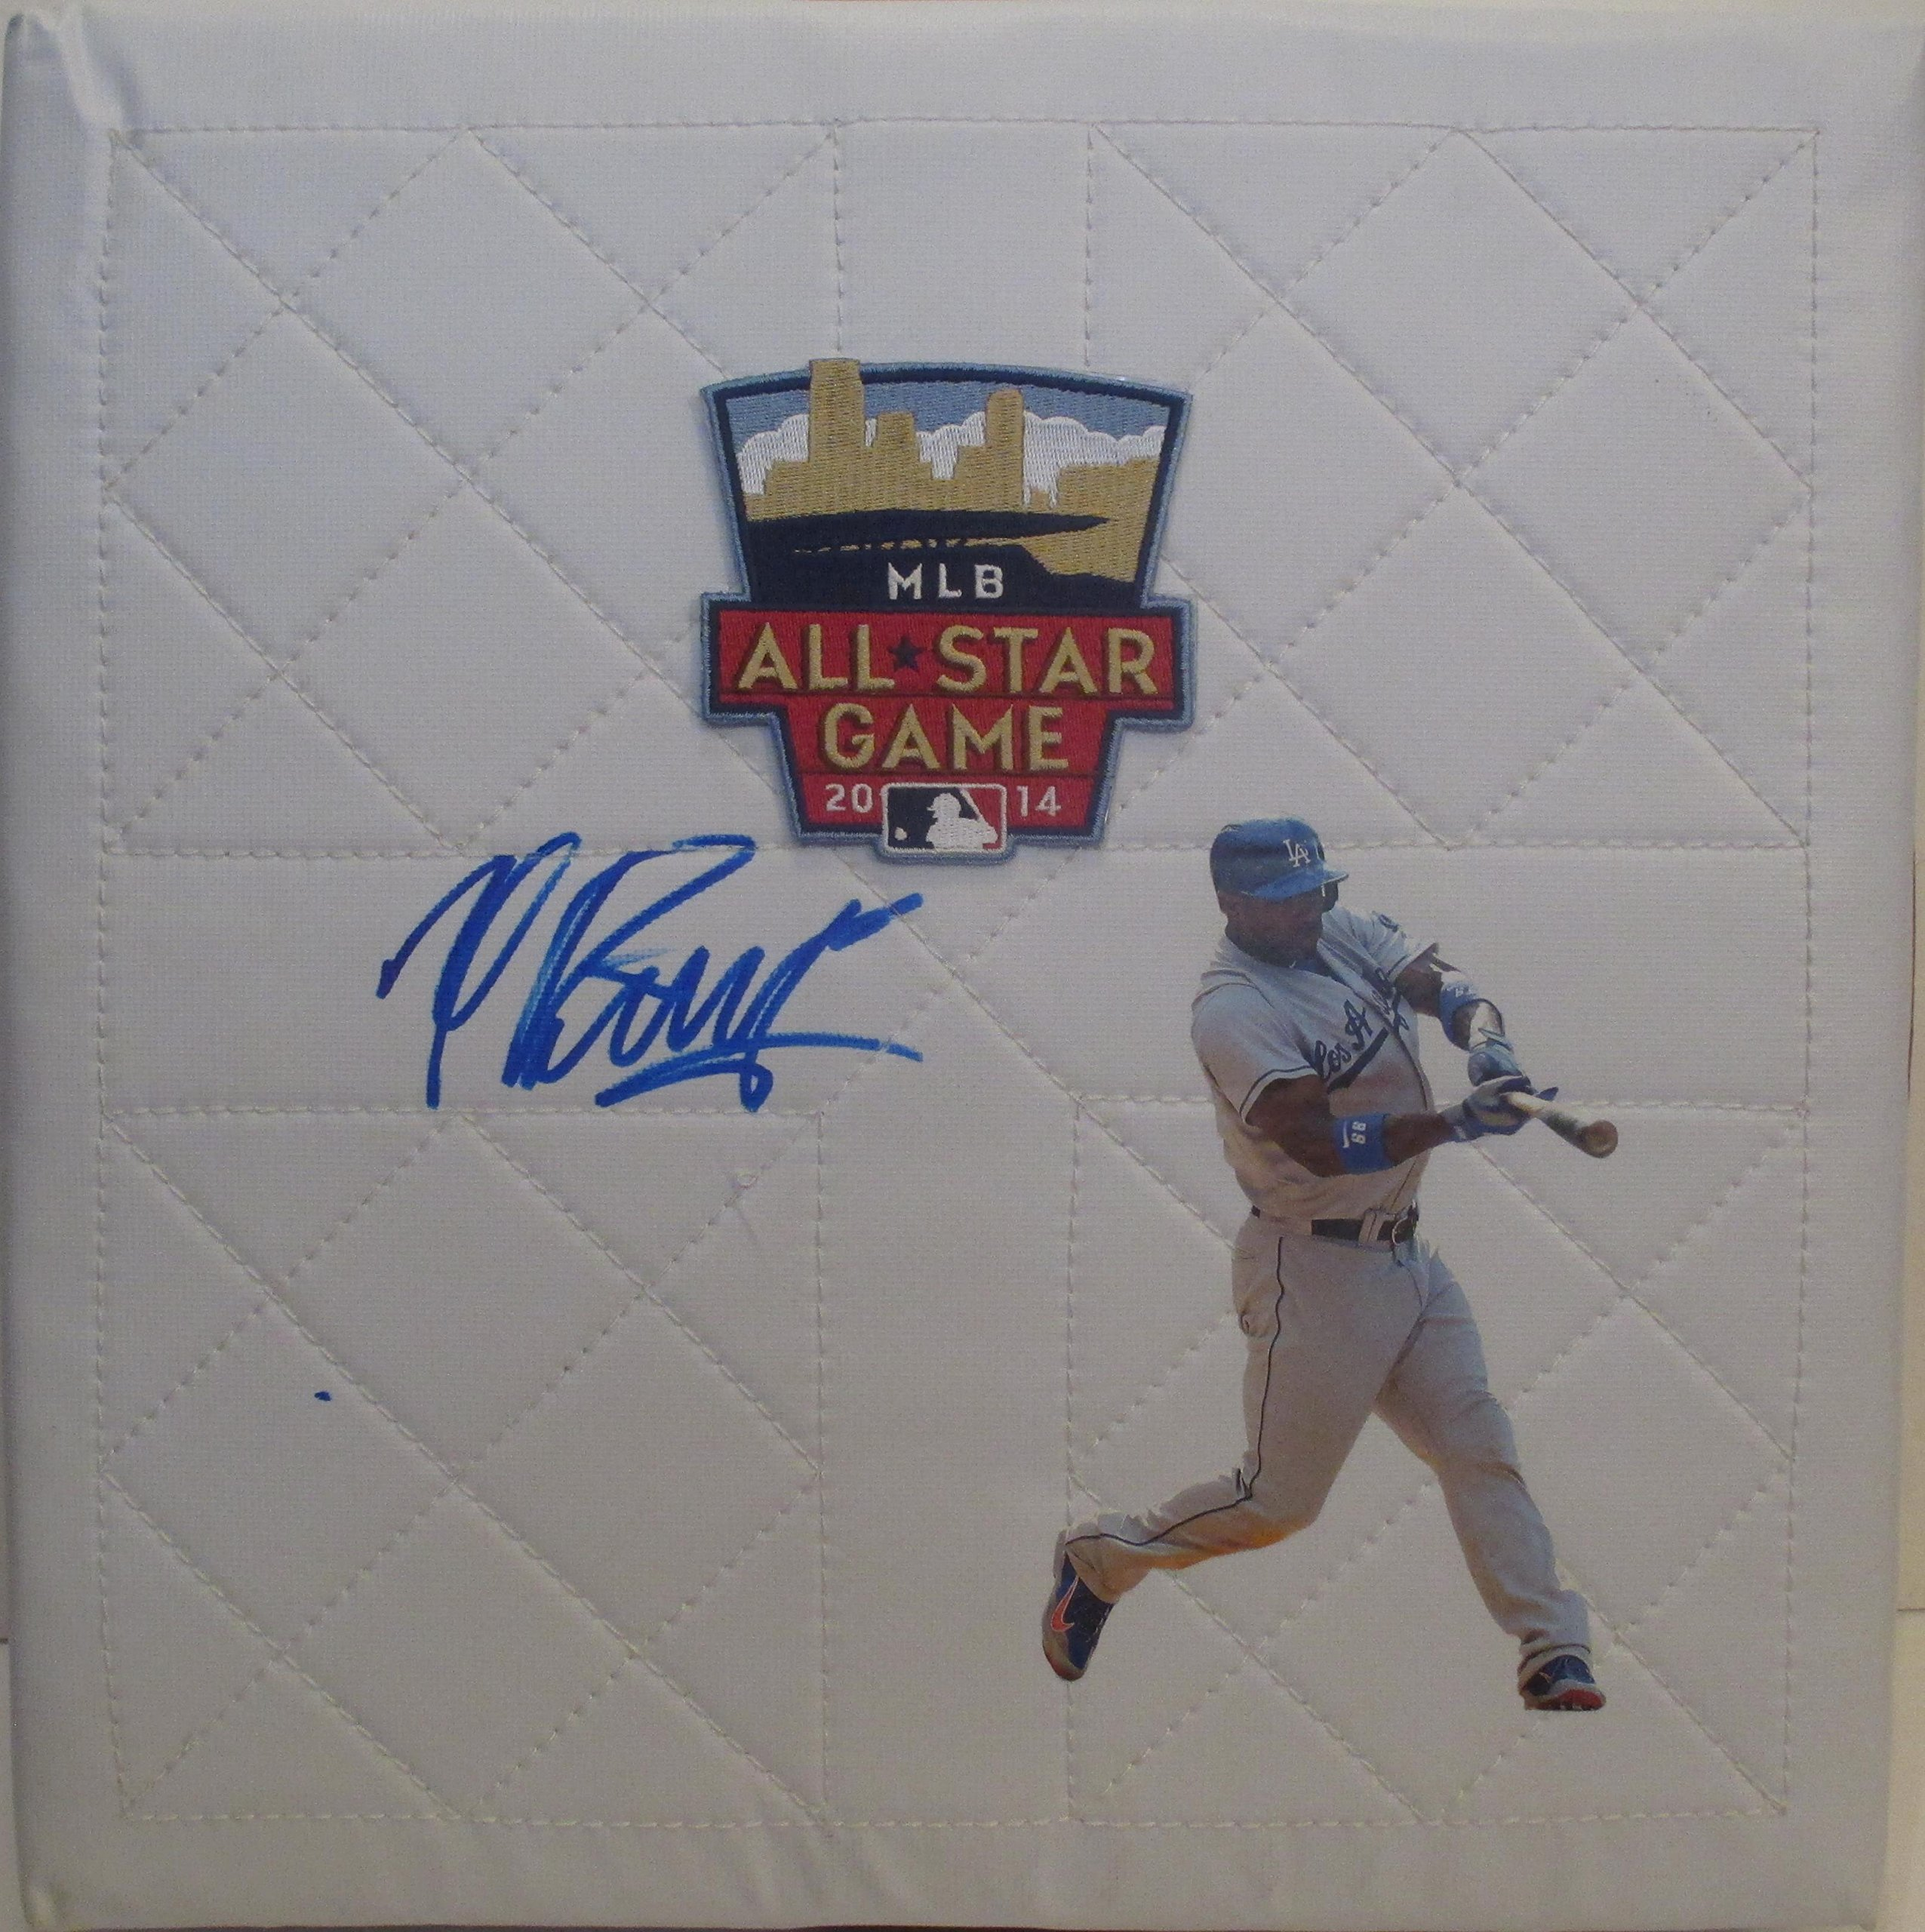 Los Angeles Dodgers Yasiel Puig Autographed Hand Signed 2014 MLB All Star Game Baseball Photo Base with Proof Photo of Signing and COA